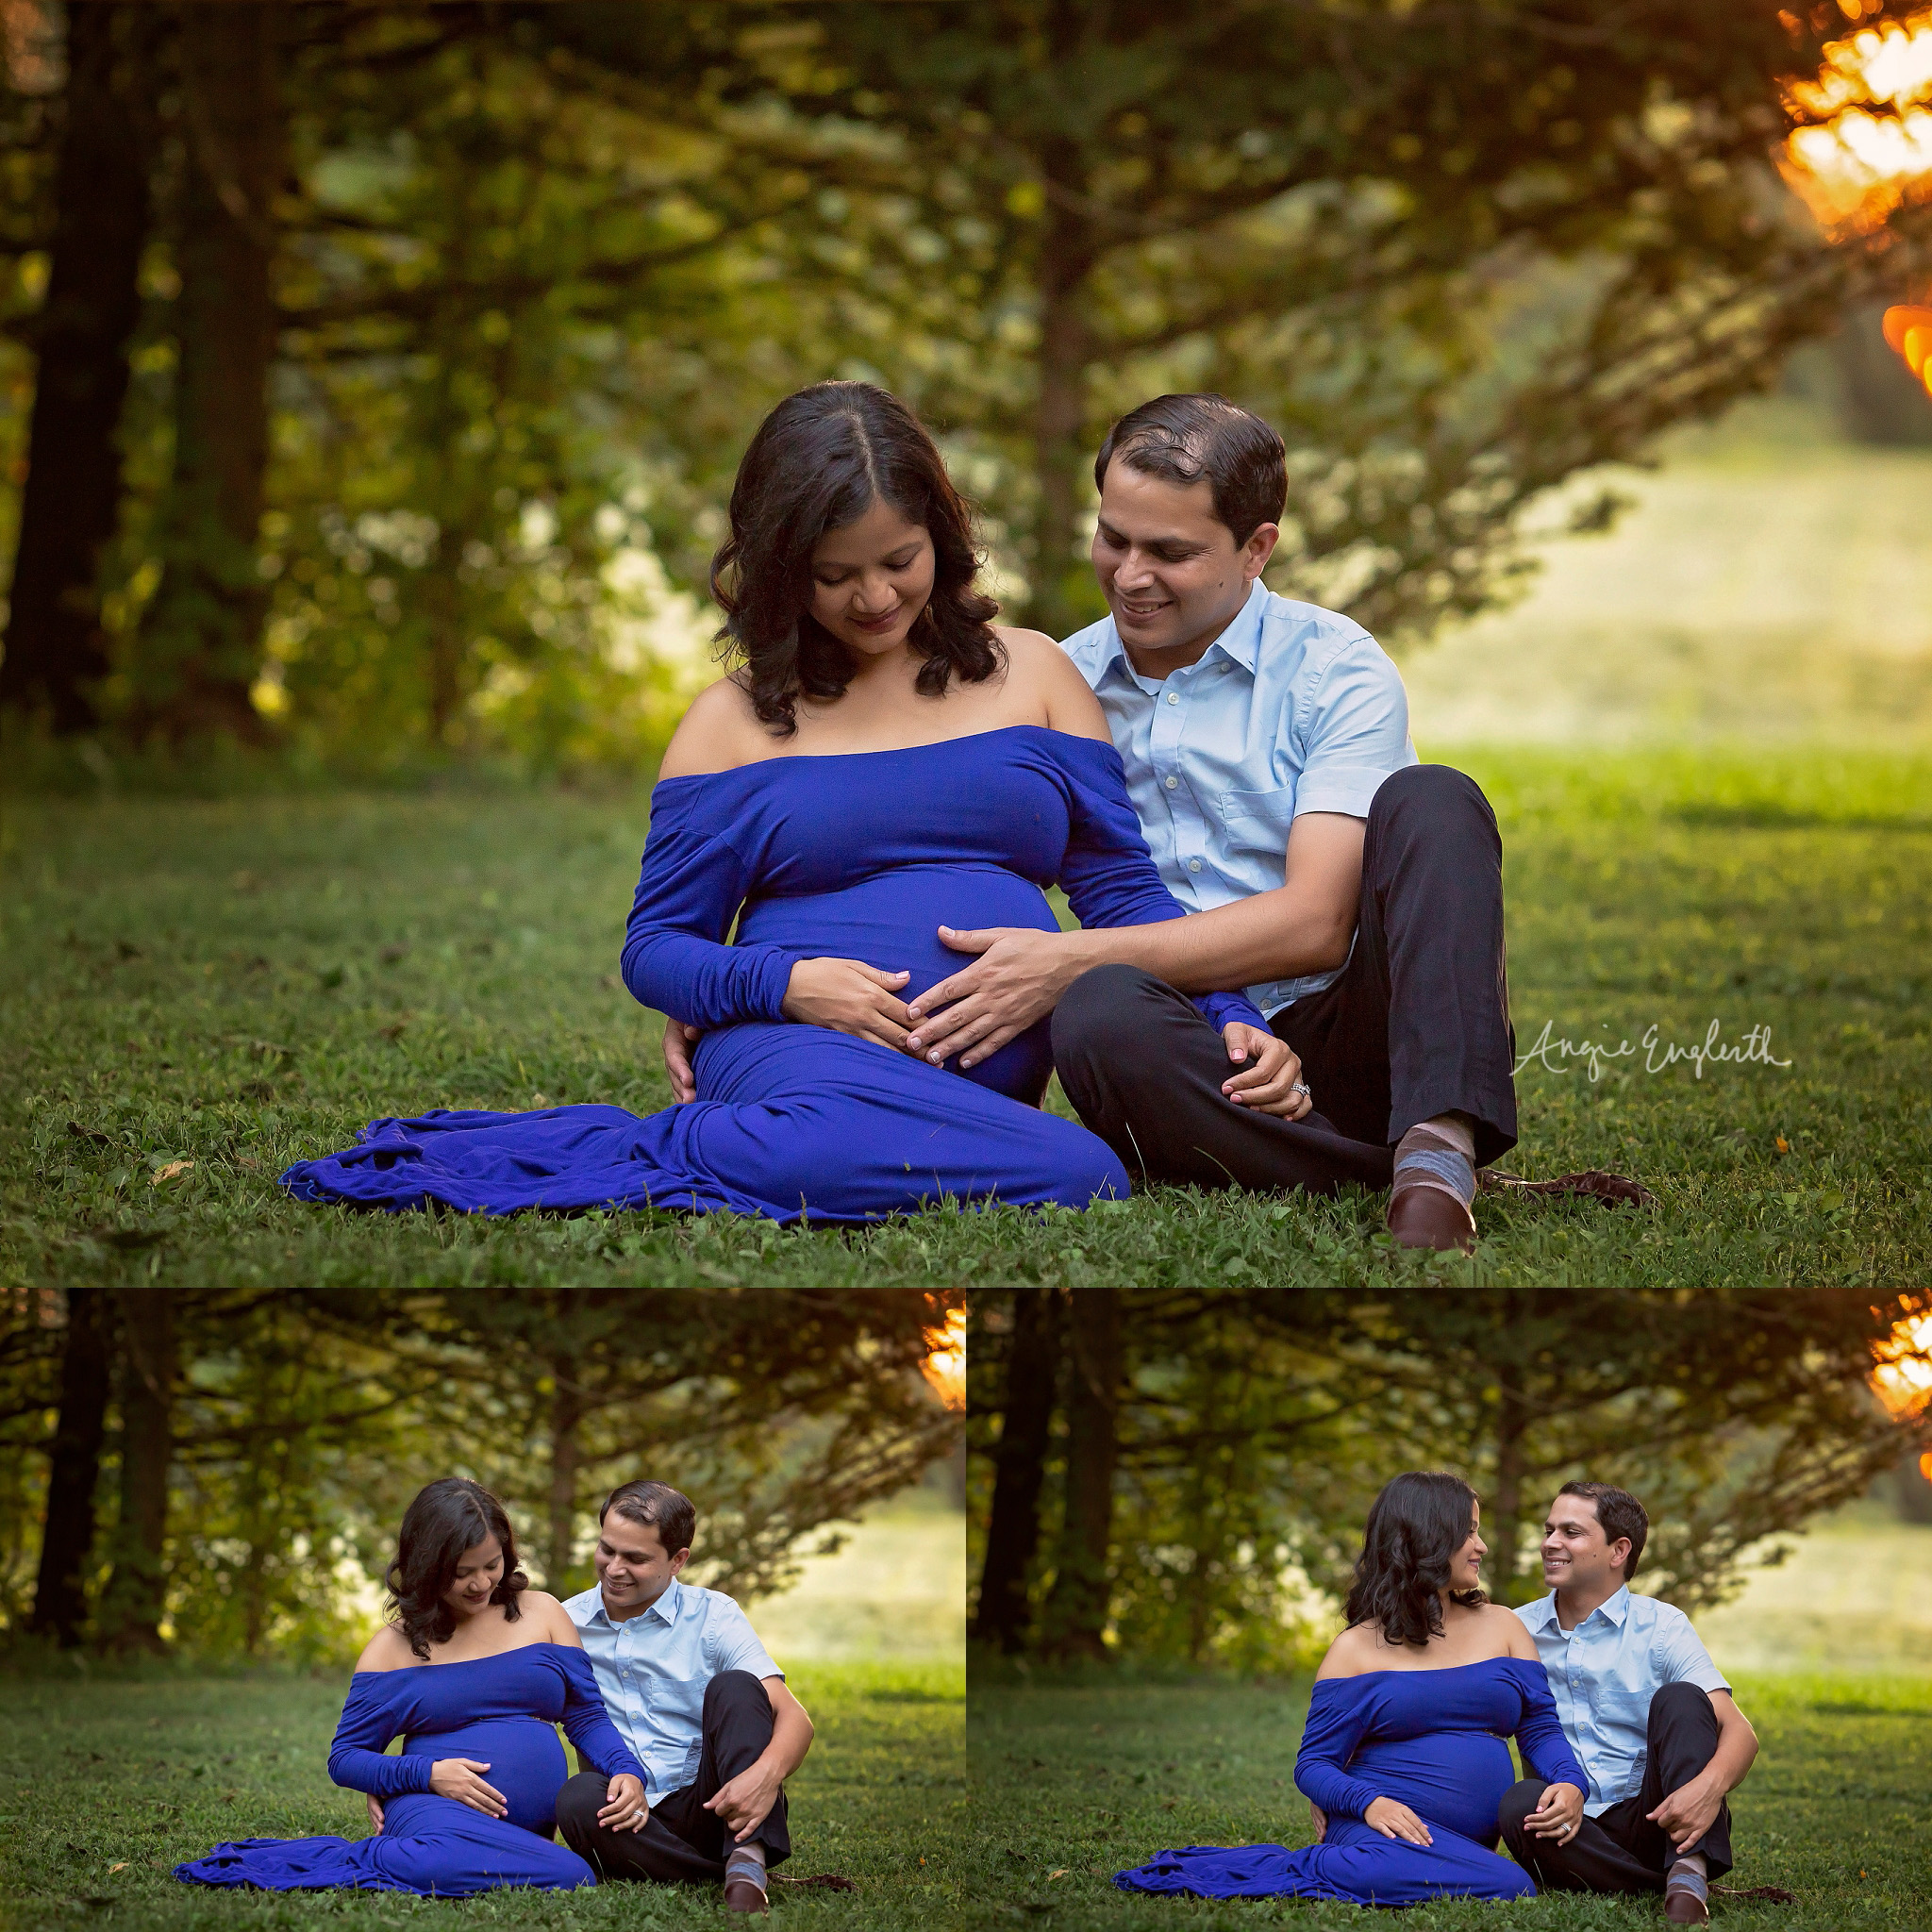 lancaster_newborn_and_maternity_photographer_angie_englerth_central_pa_b034.jpg